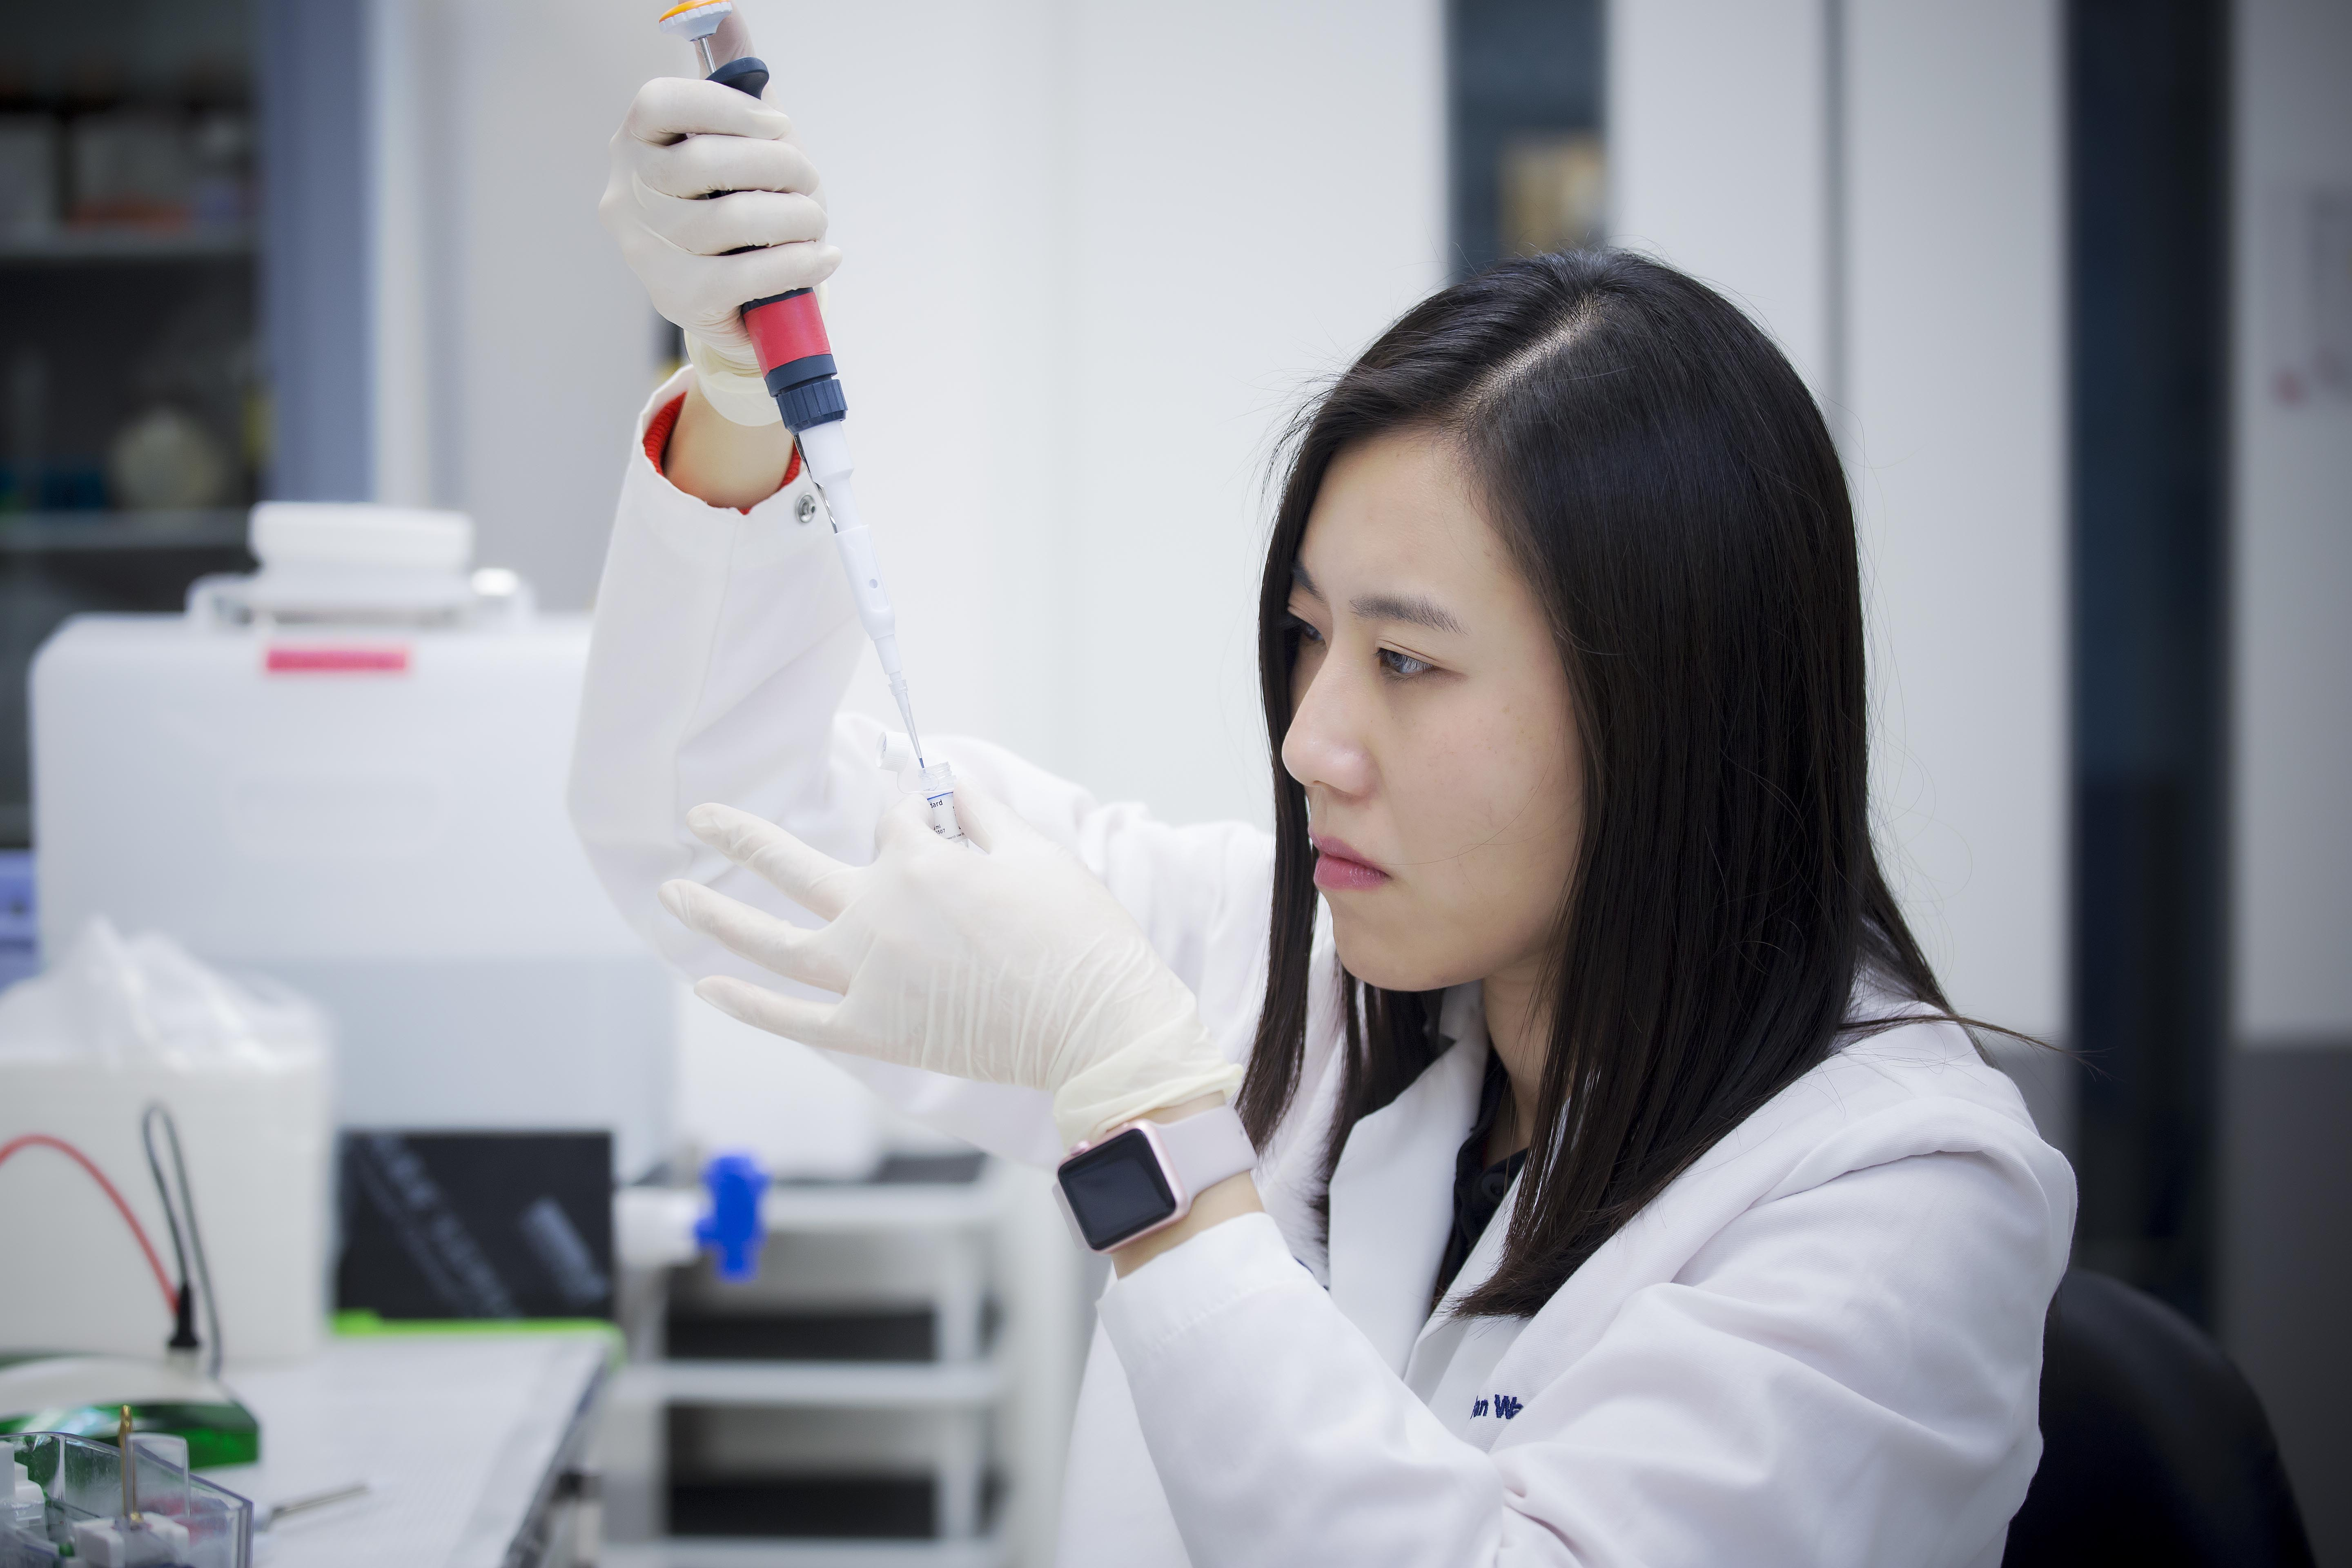 Dr Vivien Wang has published her research work in Molecular Cell